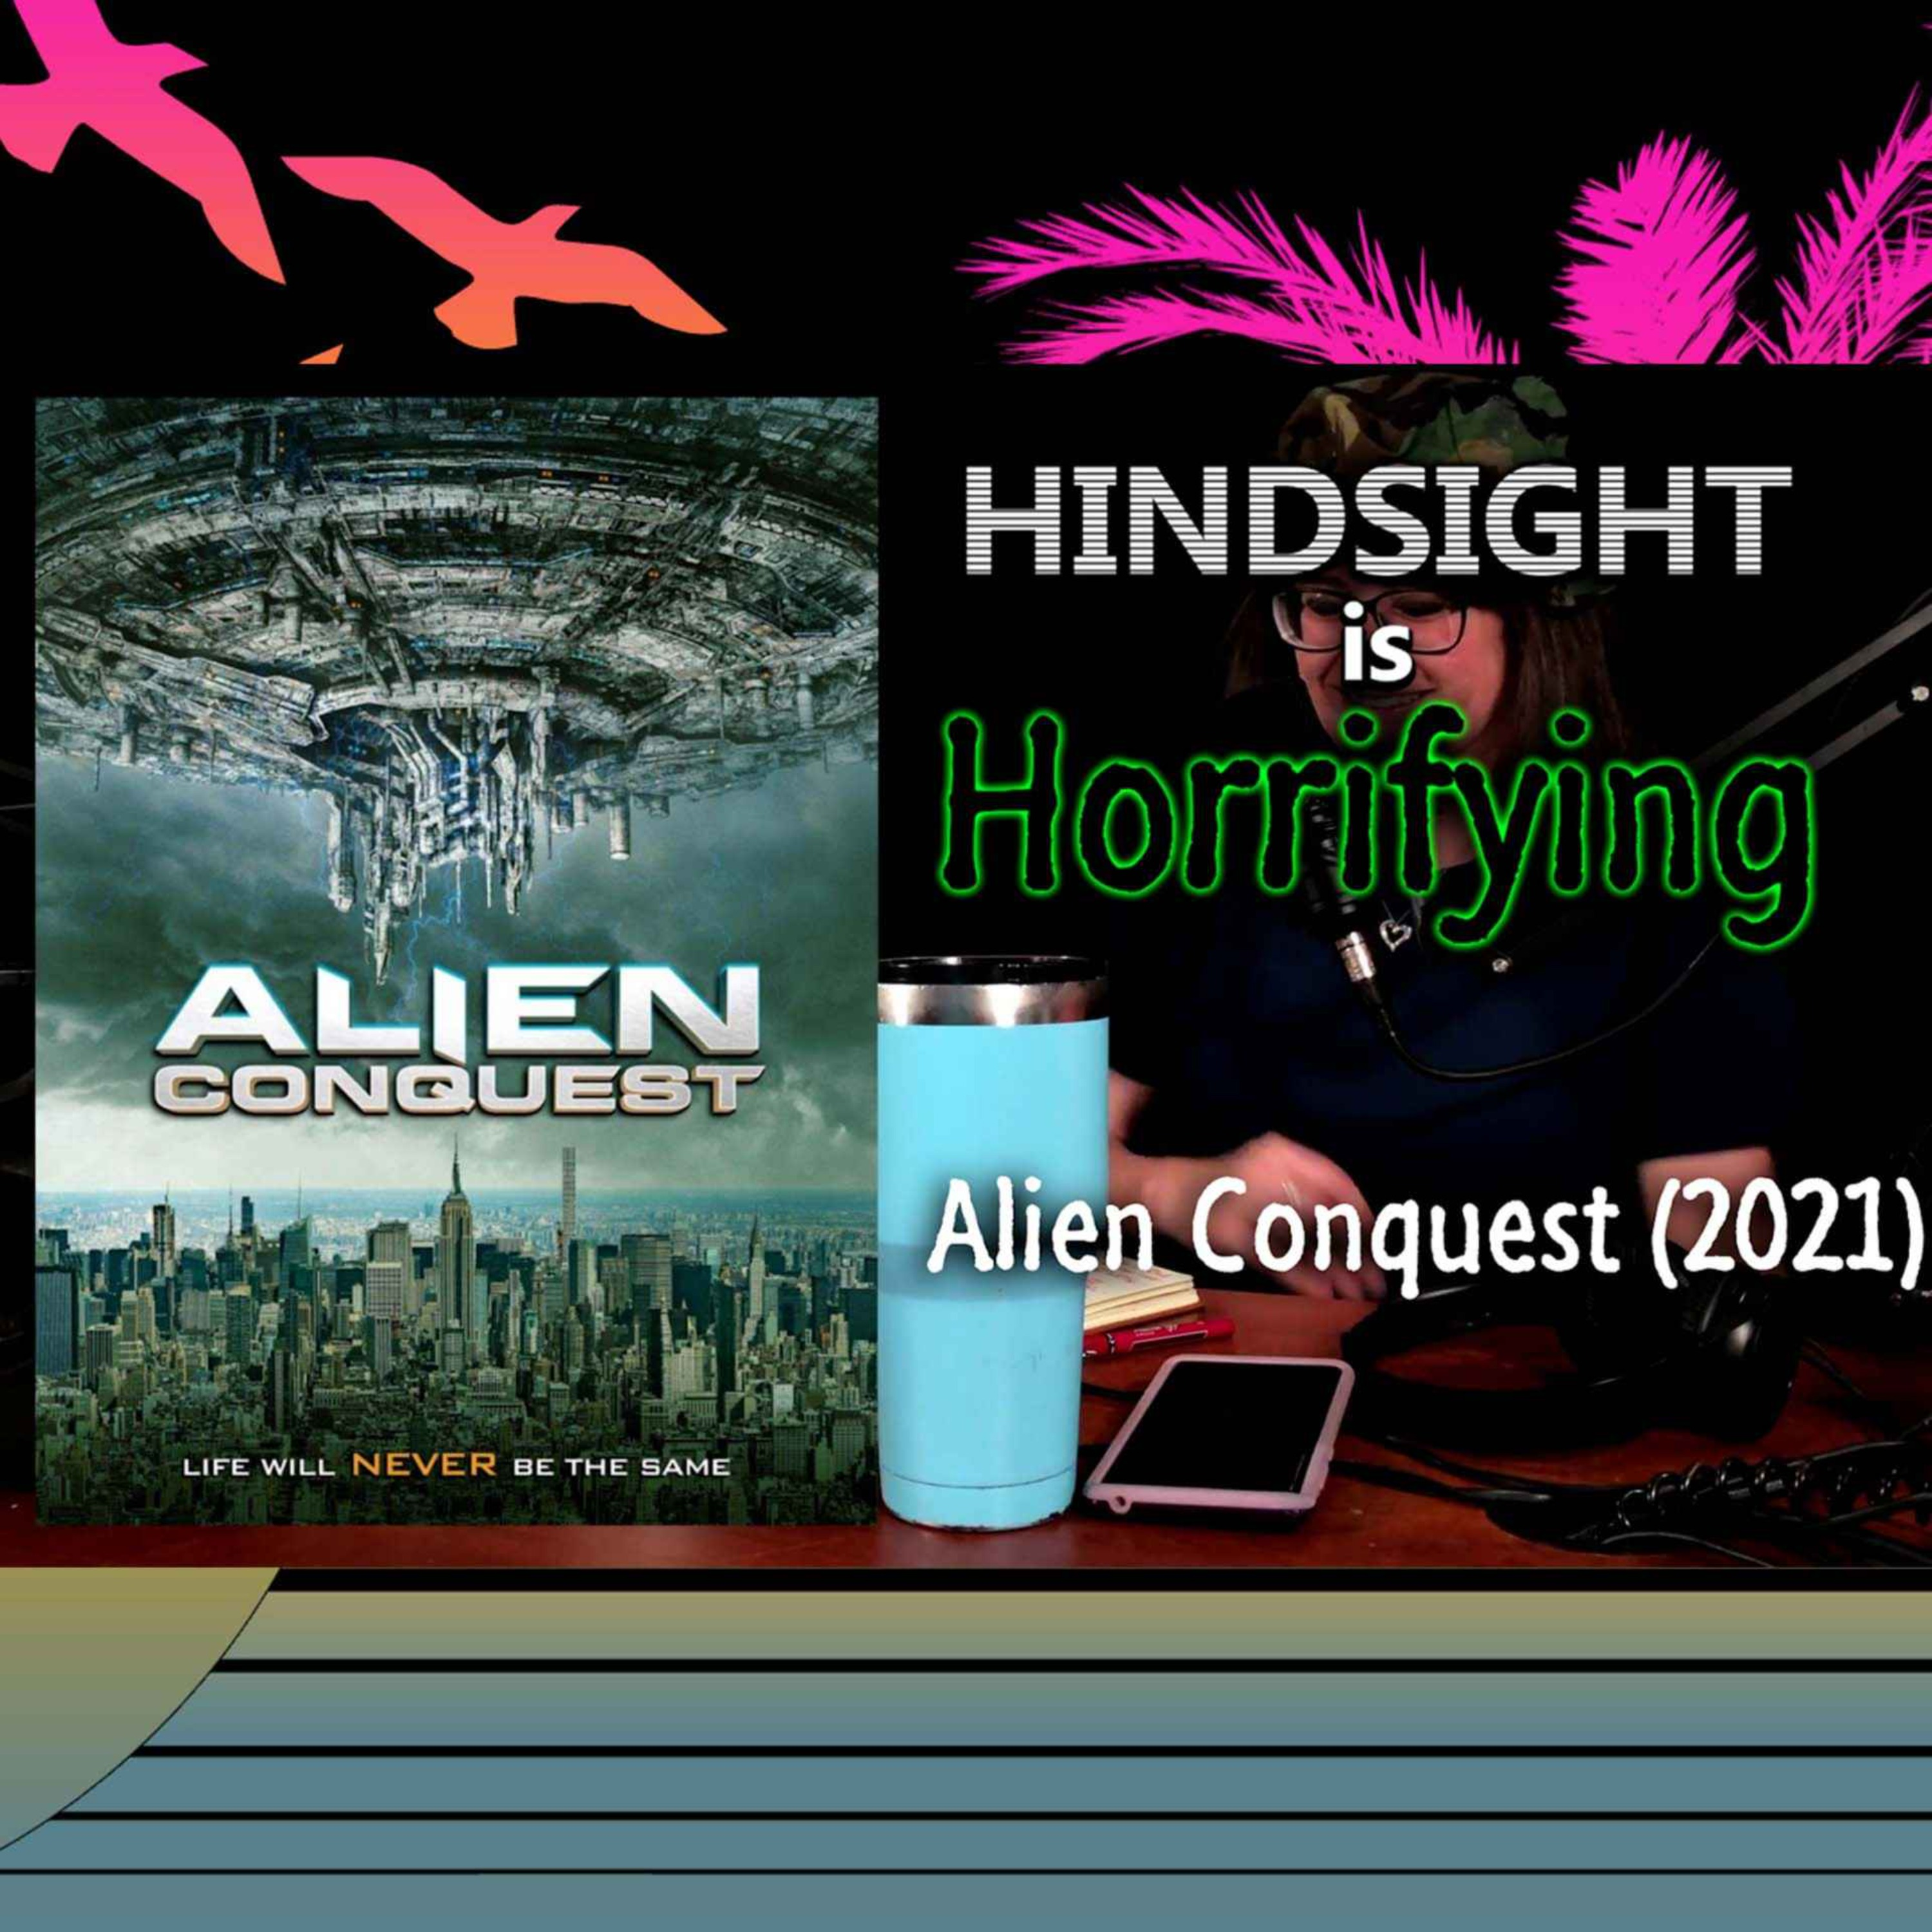 Killing Aliens with Windex! It's Alien Conquest (2021) on Hindsight is Horrifying